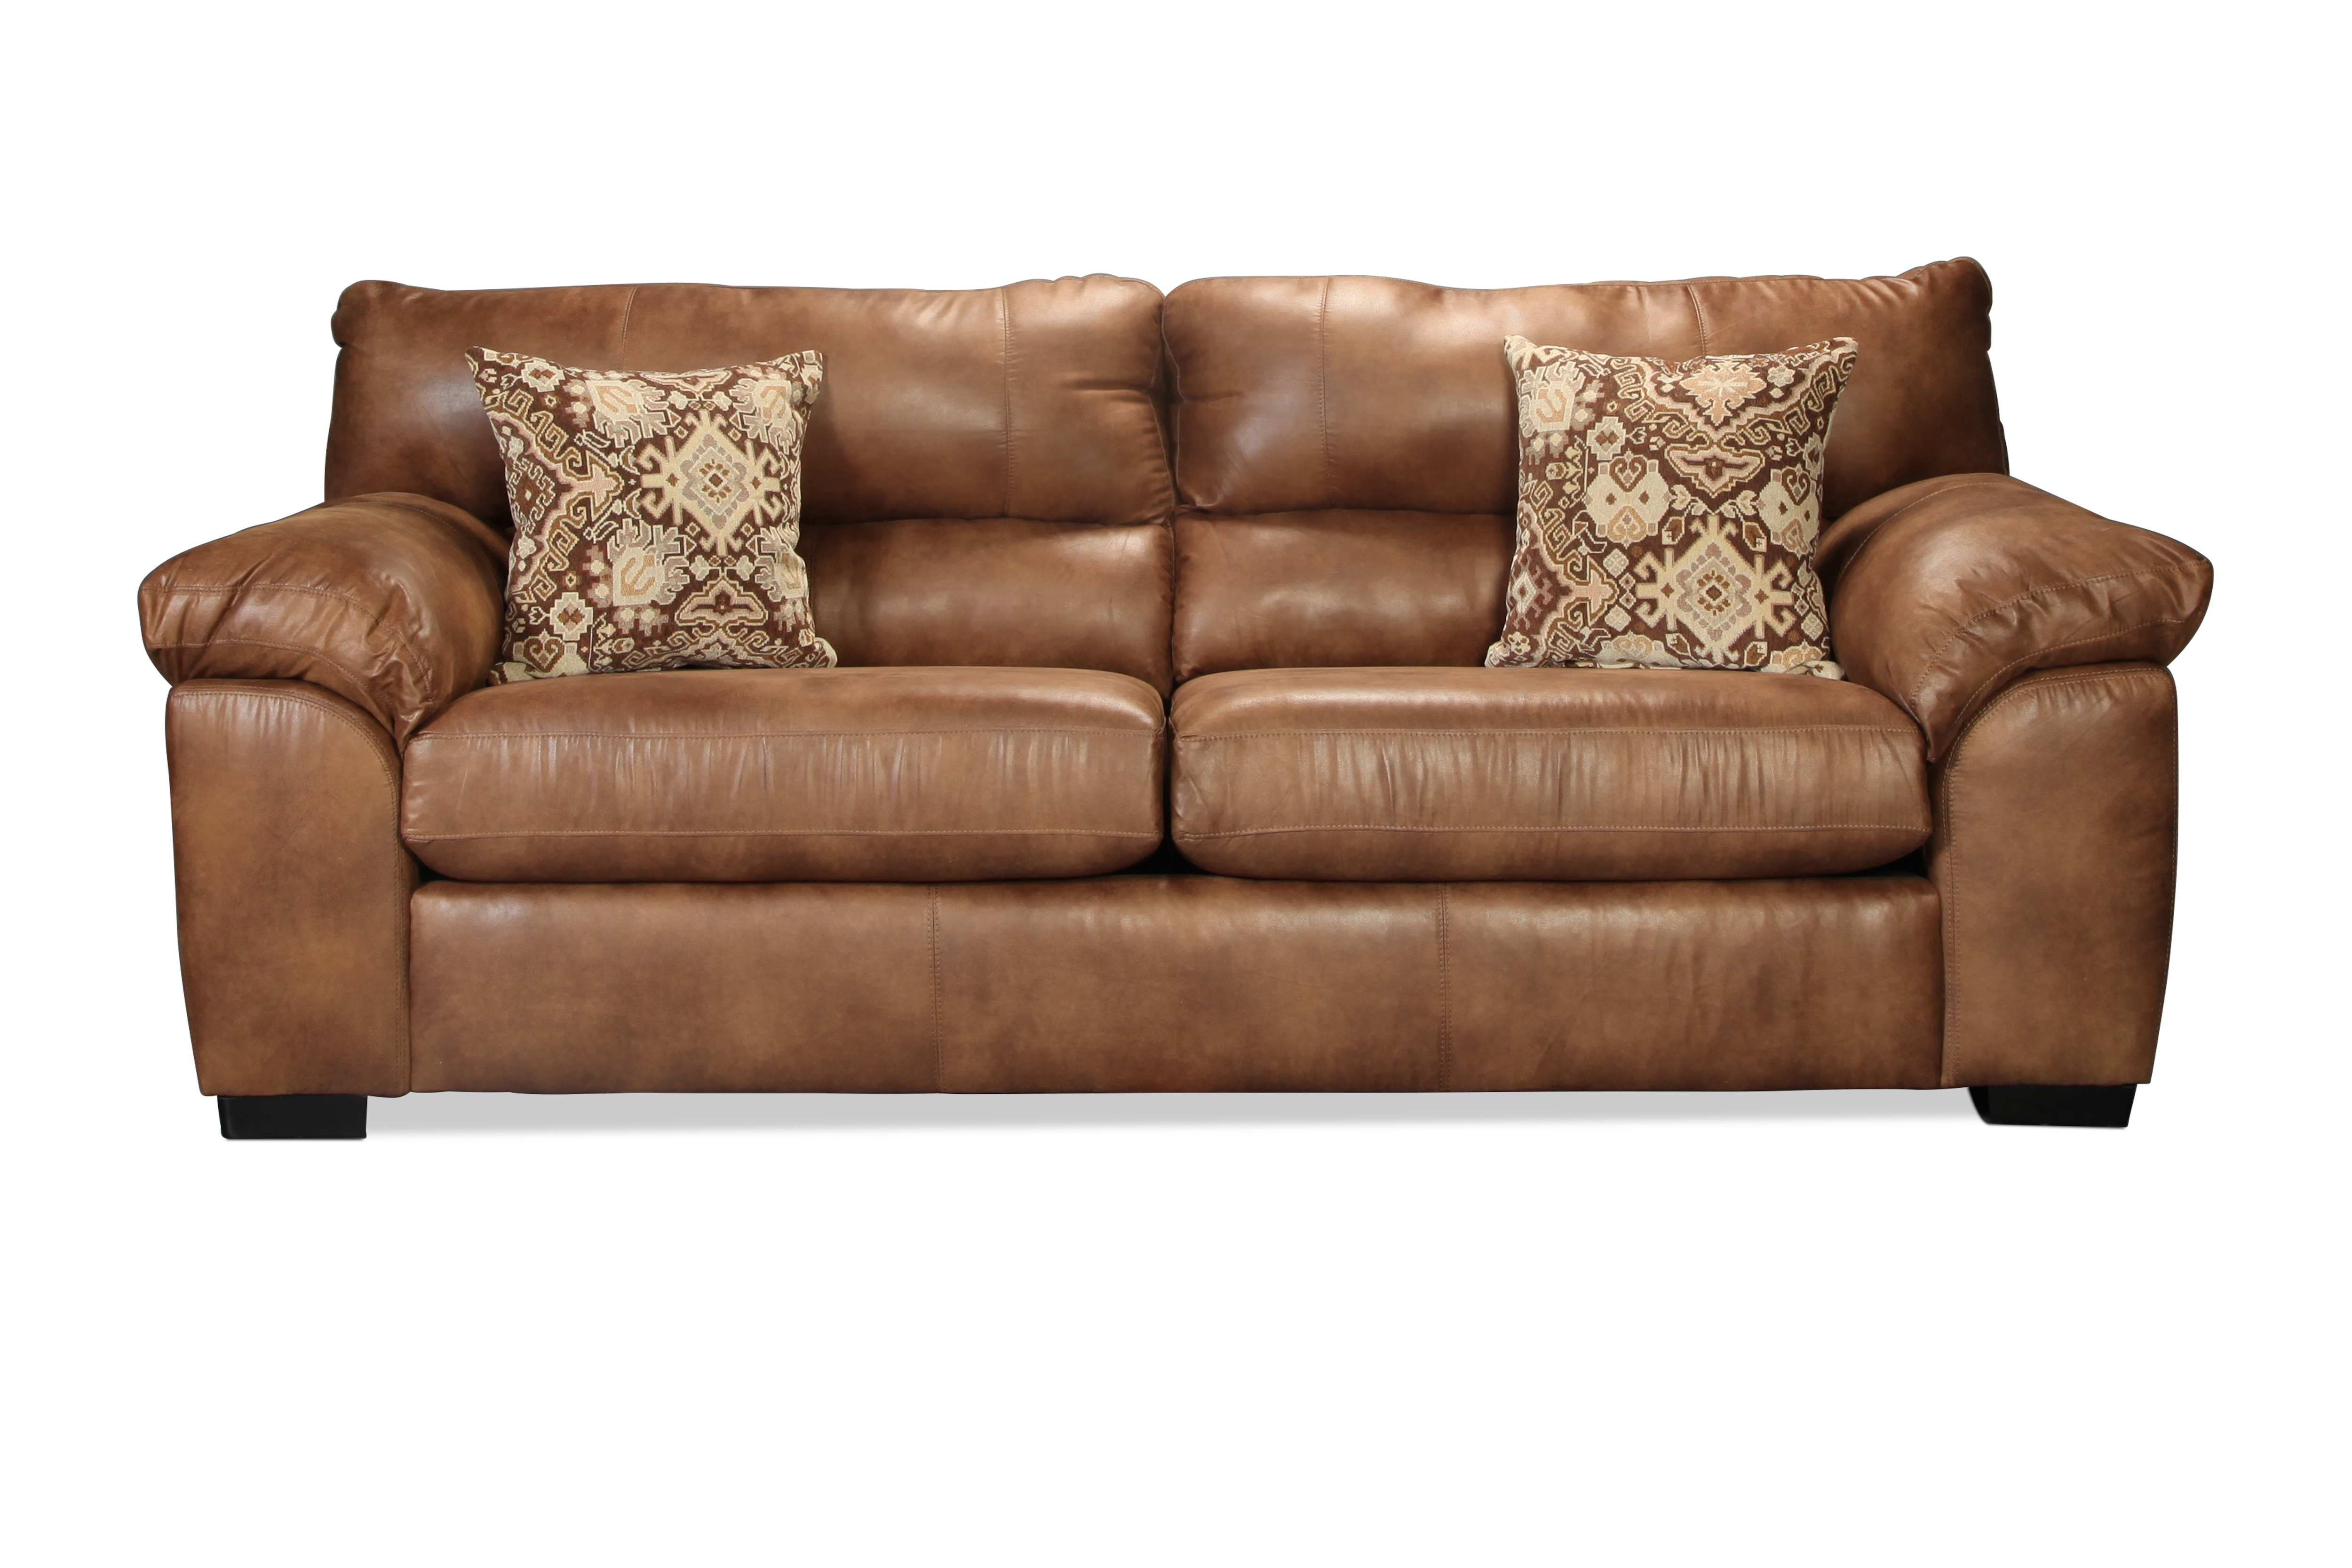 Dfs corner sofas on finance refil sofa for Couch 0 finance